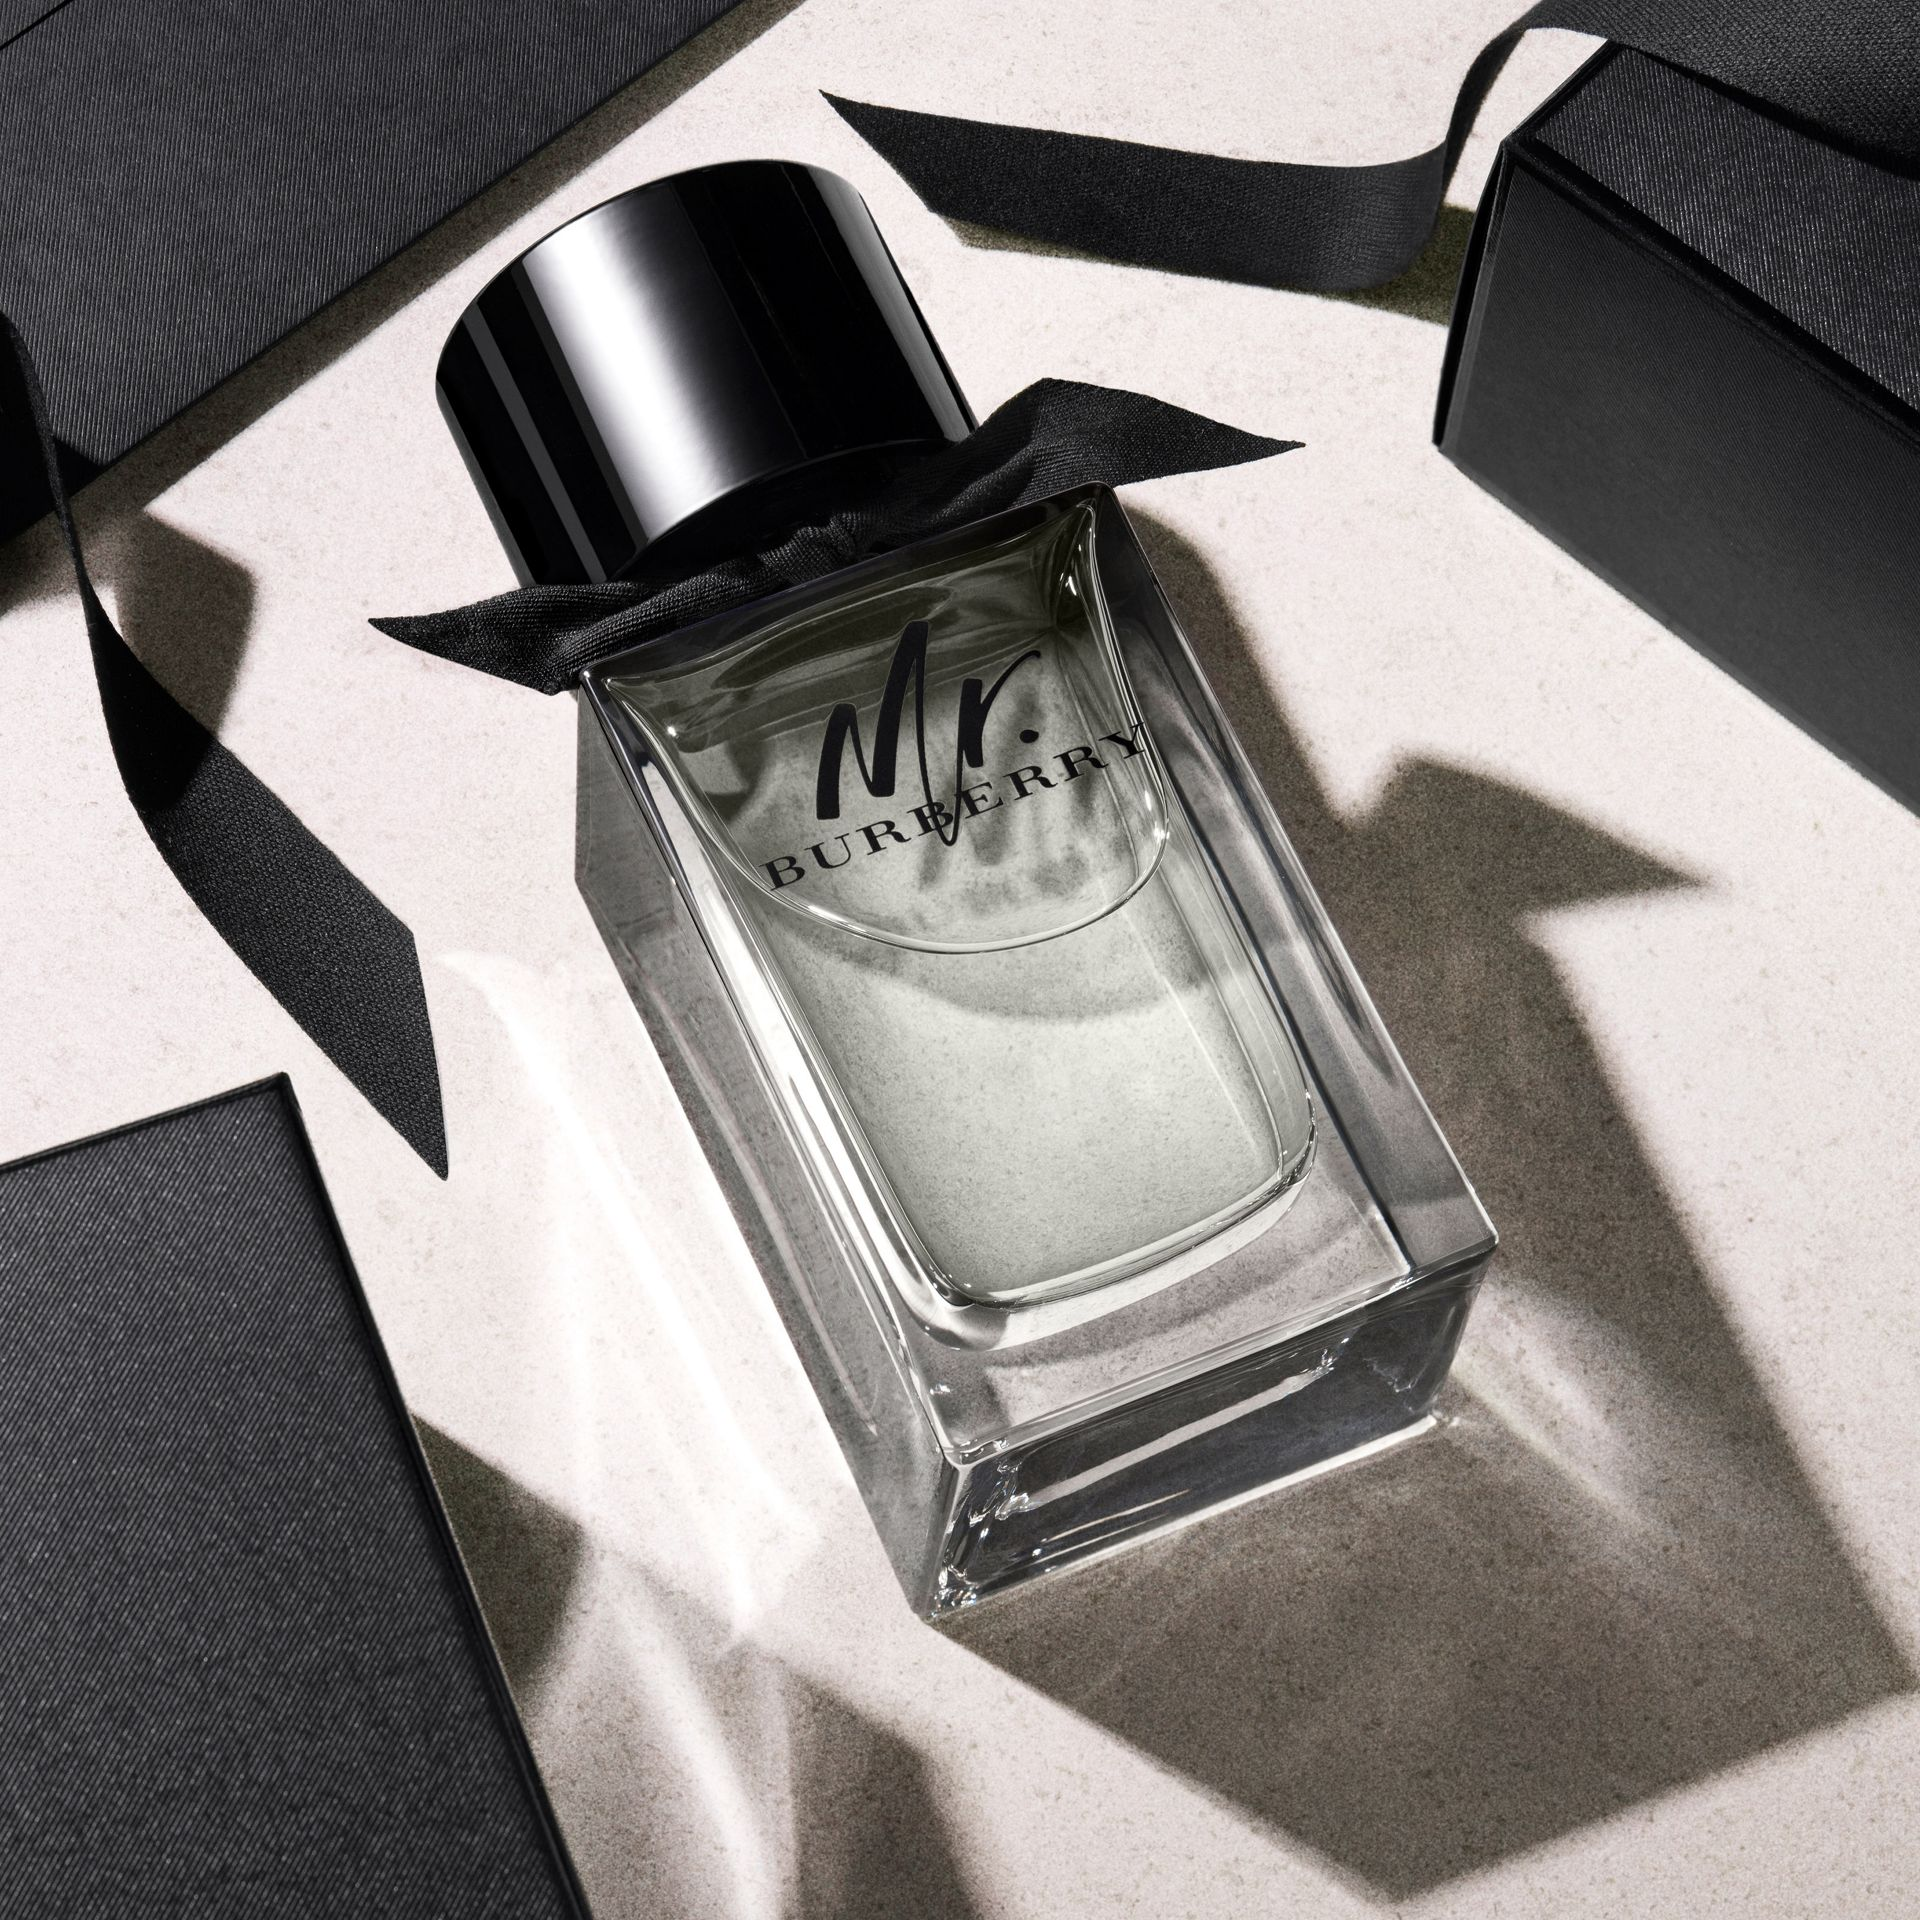 Mr. Burberry Eau de Toilette 100 ml | Burberry - Galerie-Bild 2